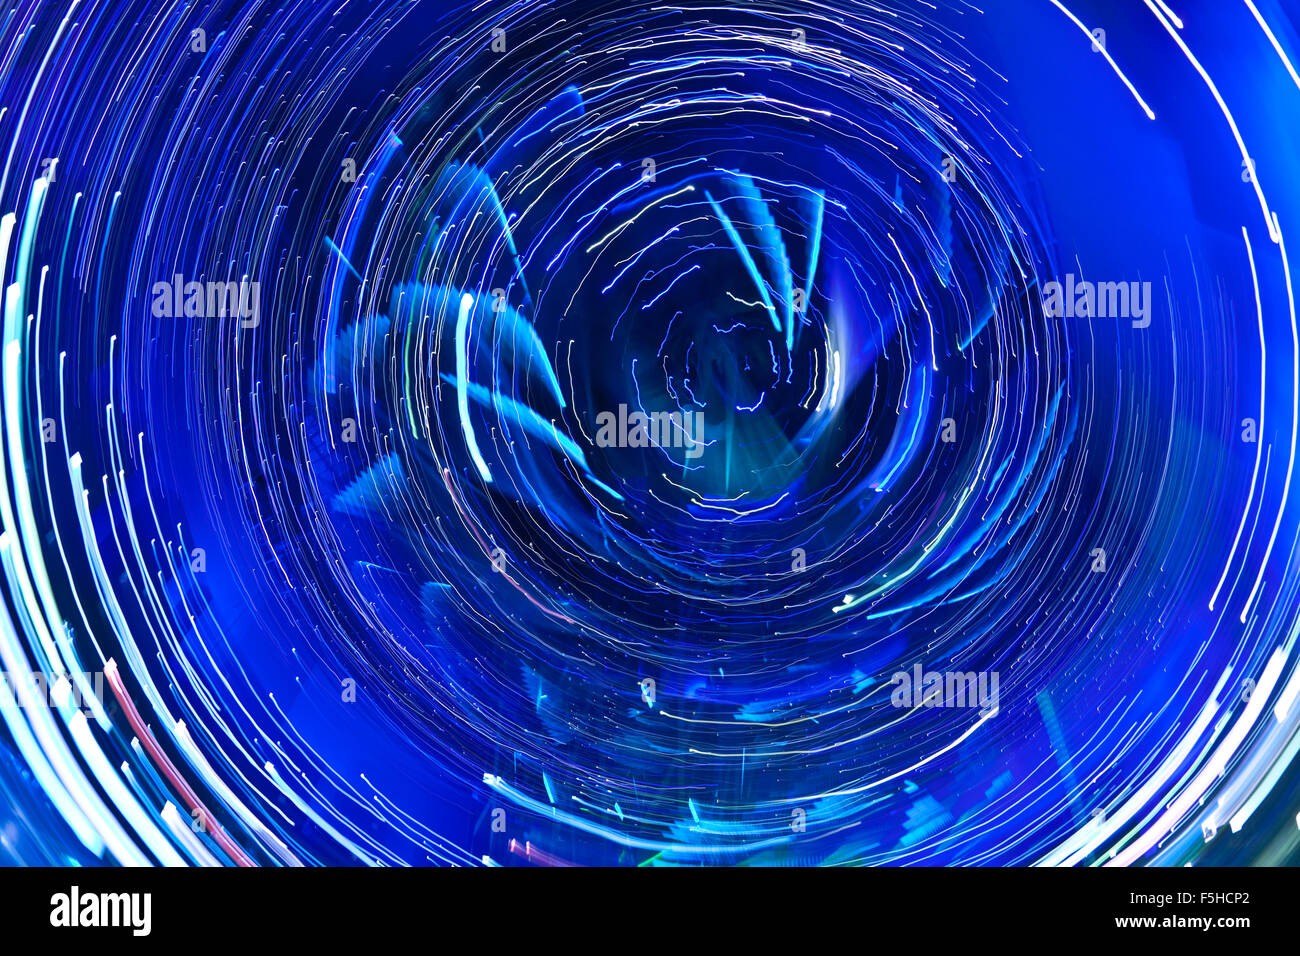 Abstract circular light trails - Stock Image